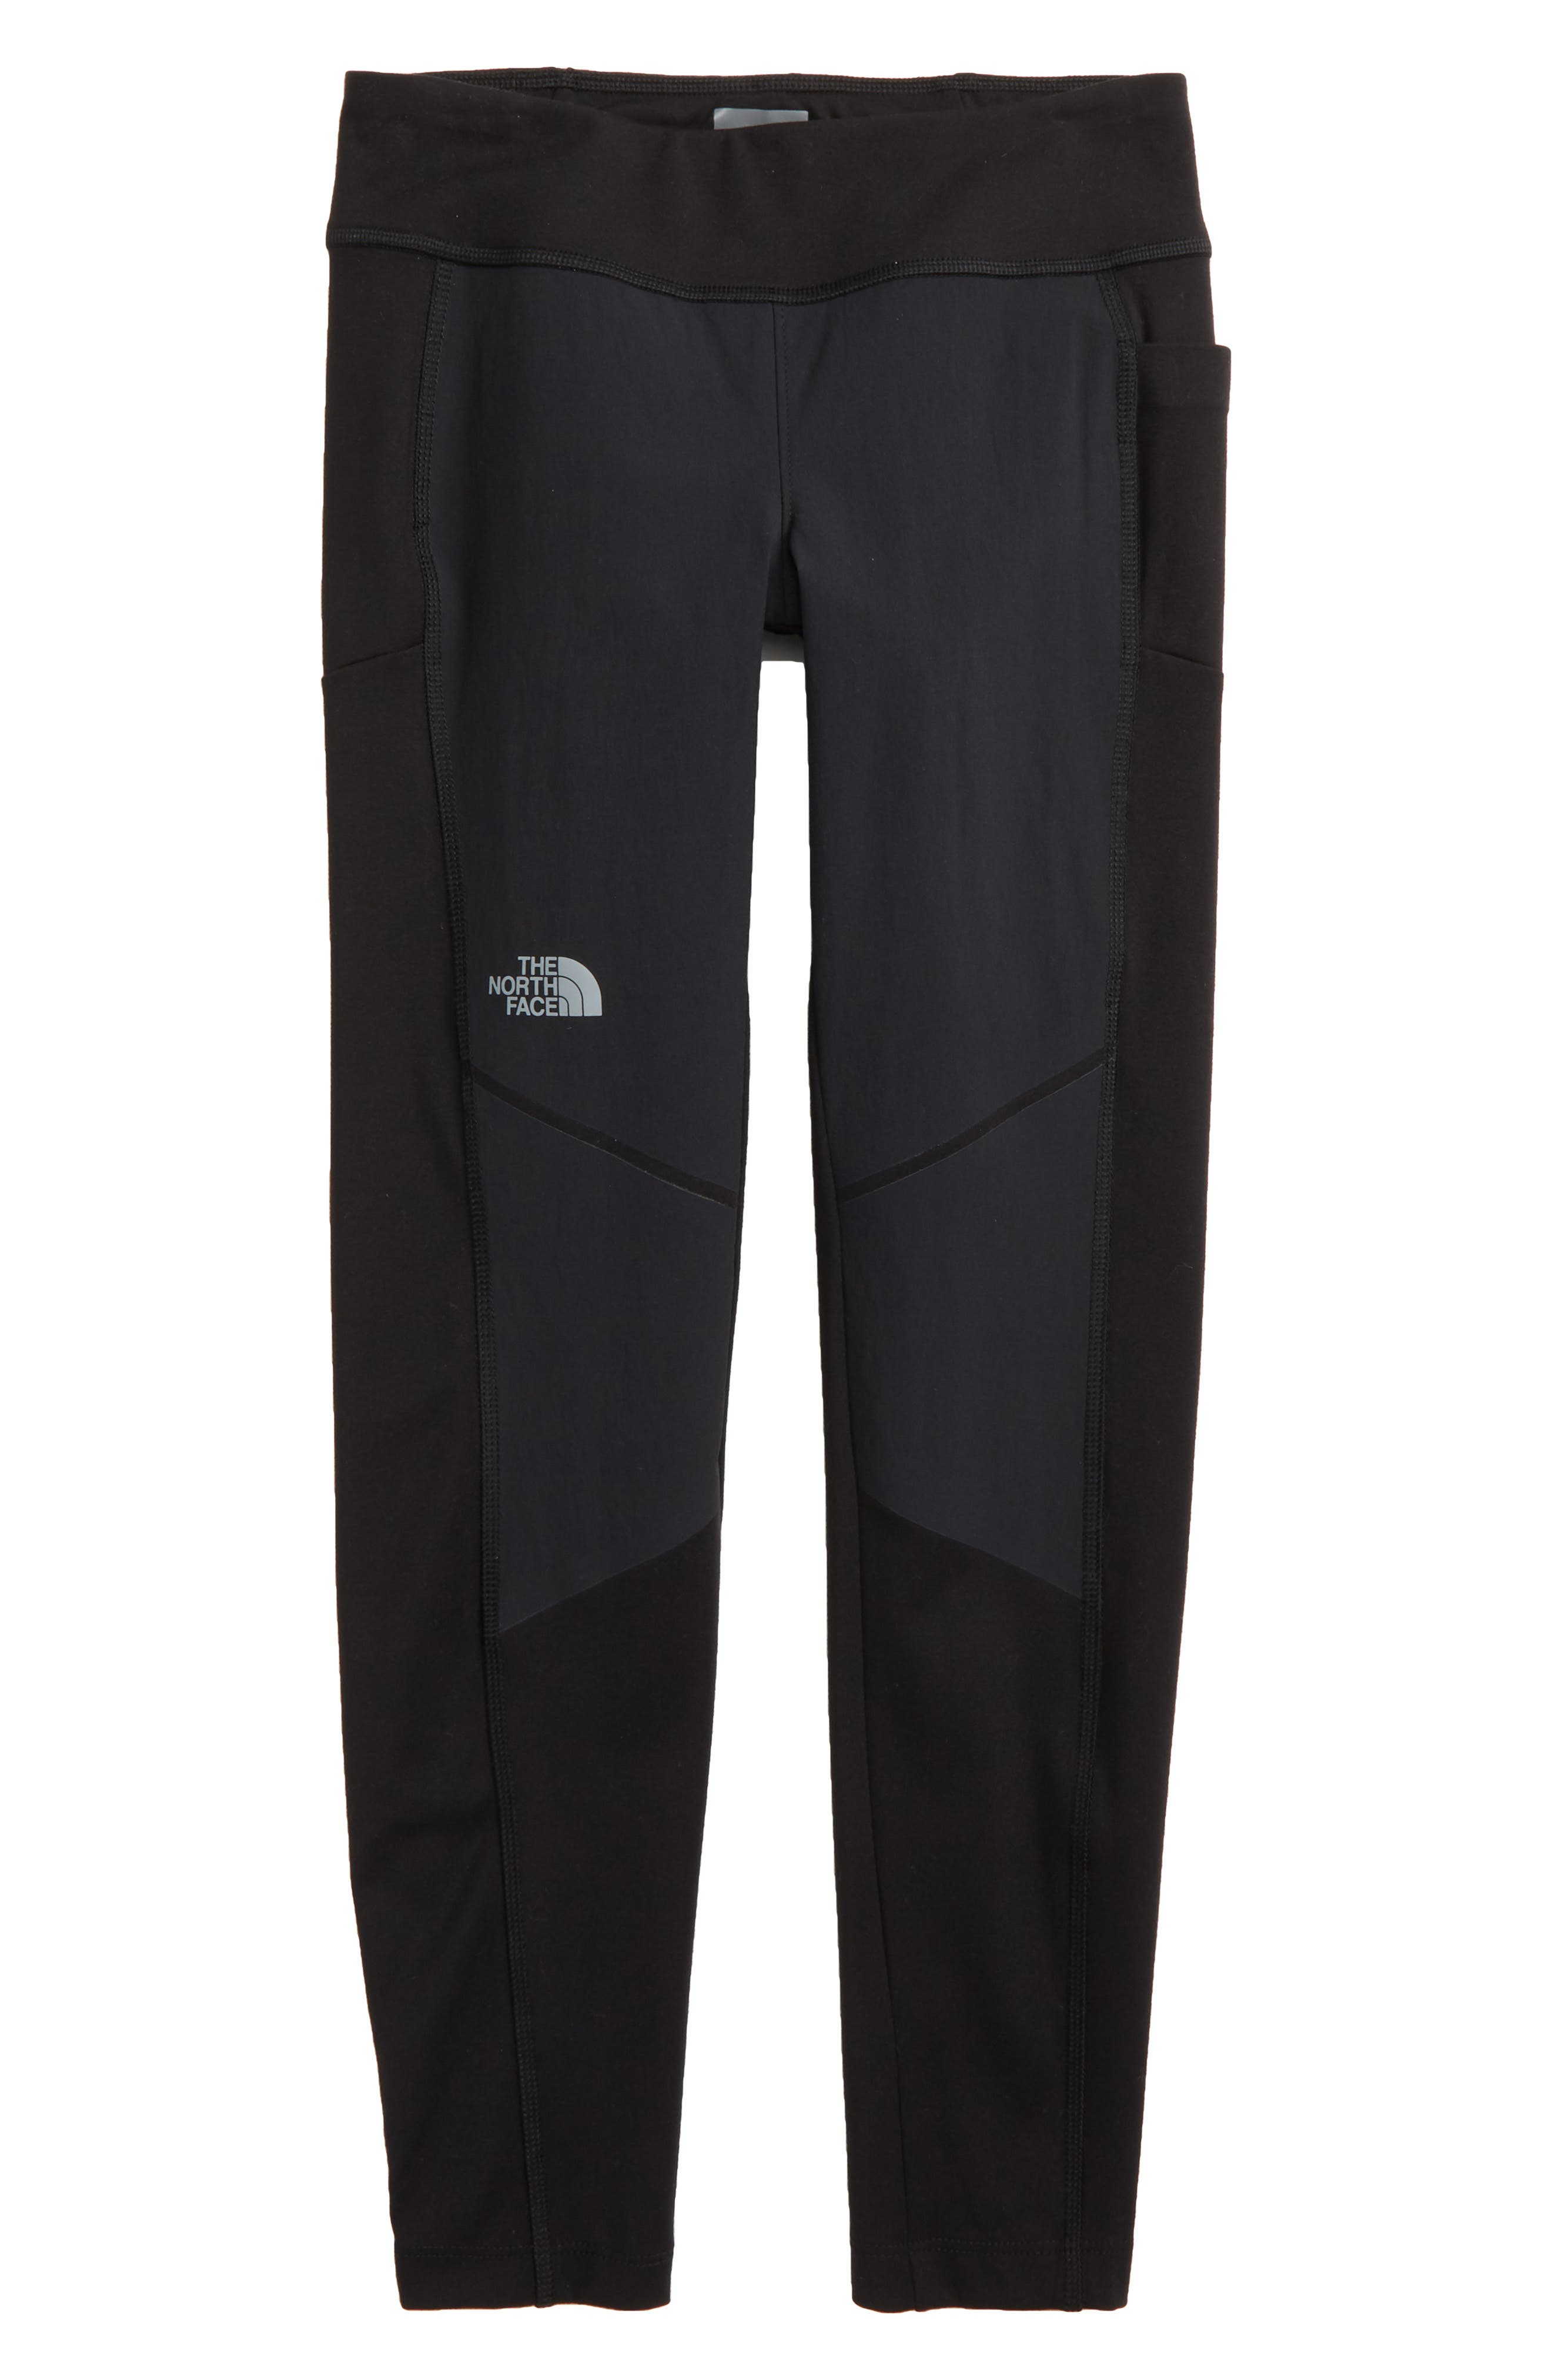 The North Face Progressor Water Resistant Tights (Big Girls)